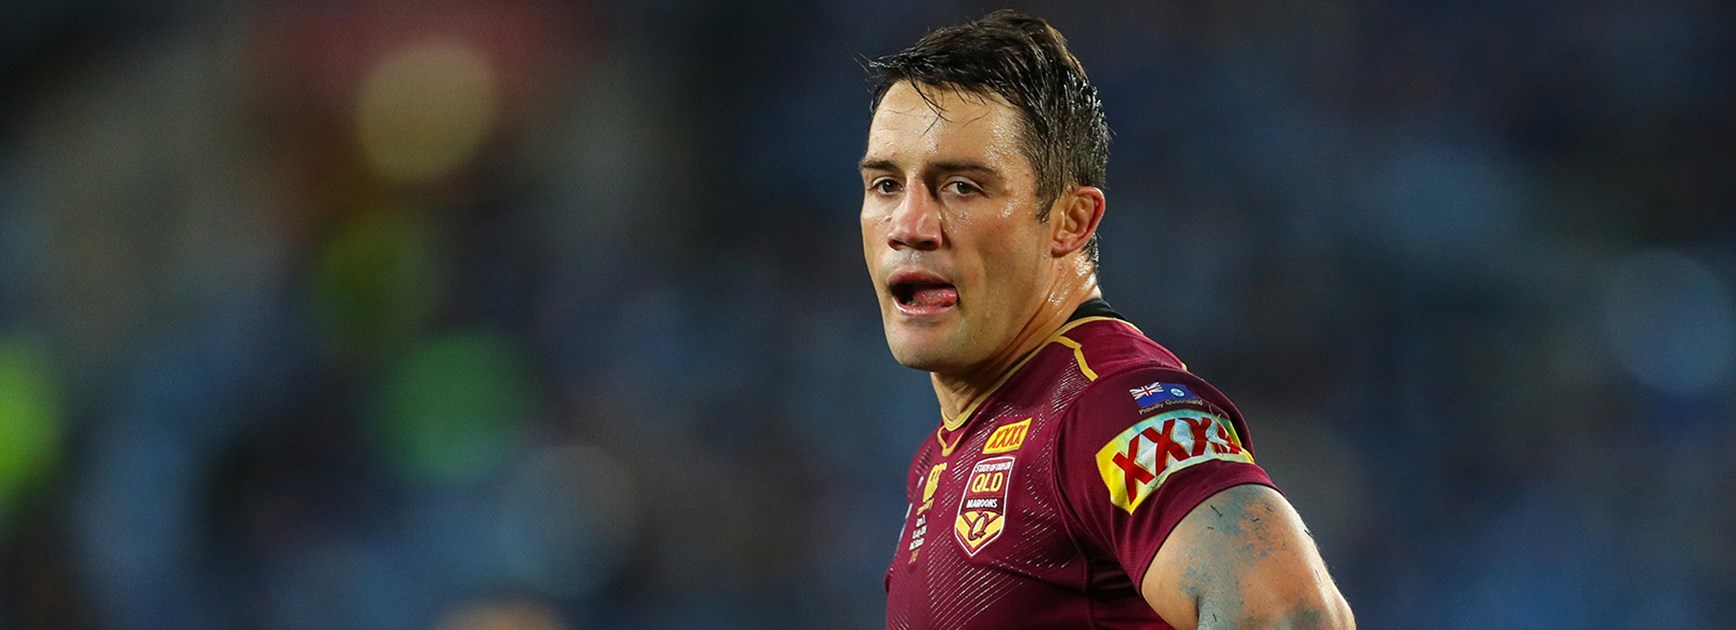 Cooper Cronk is sent to the sin bin during State of Origin III.